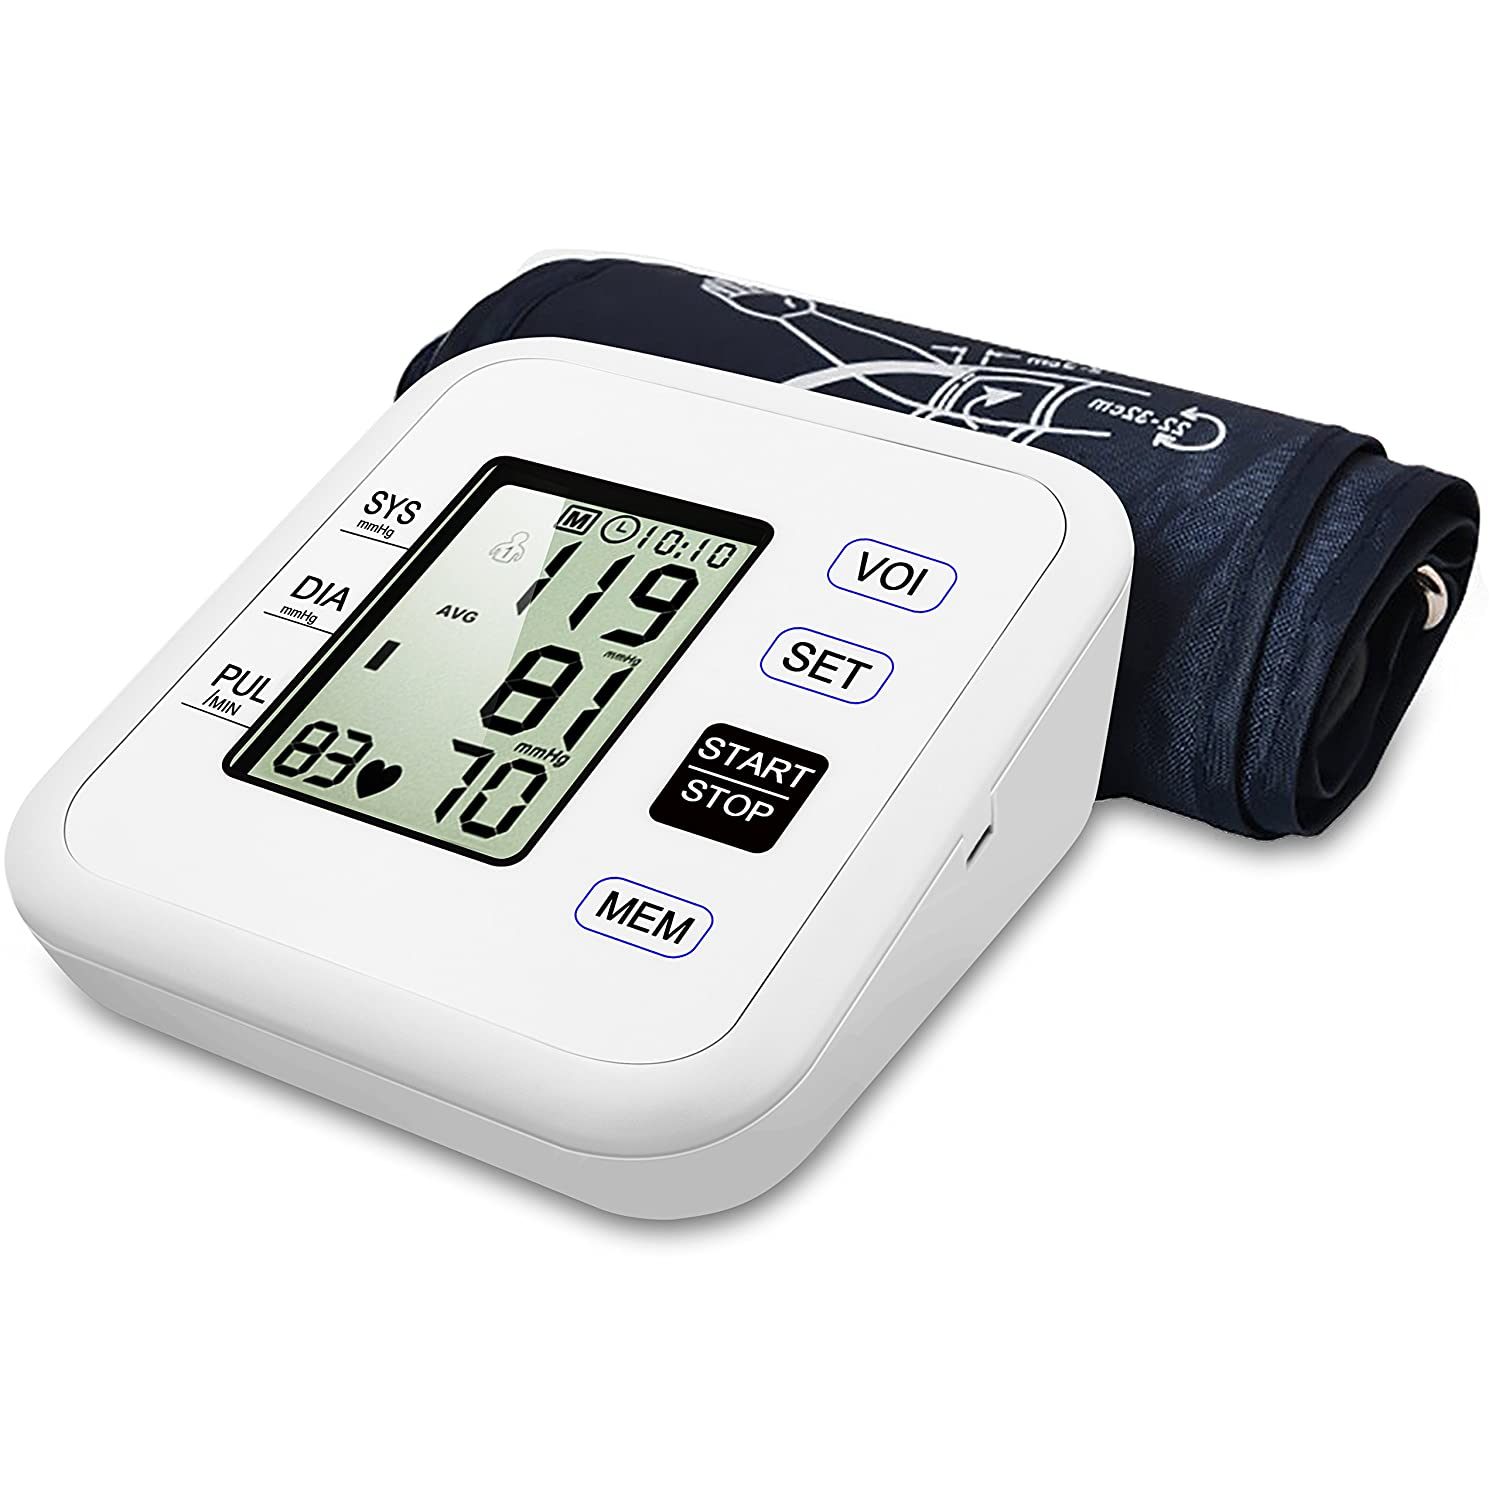 Blood Pressure Monitor Upper Arm Digital Voice Smart BP Meter with Large Display FDA Approved Included Storage Bag by Kimitech